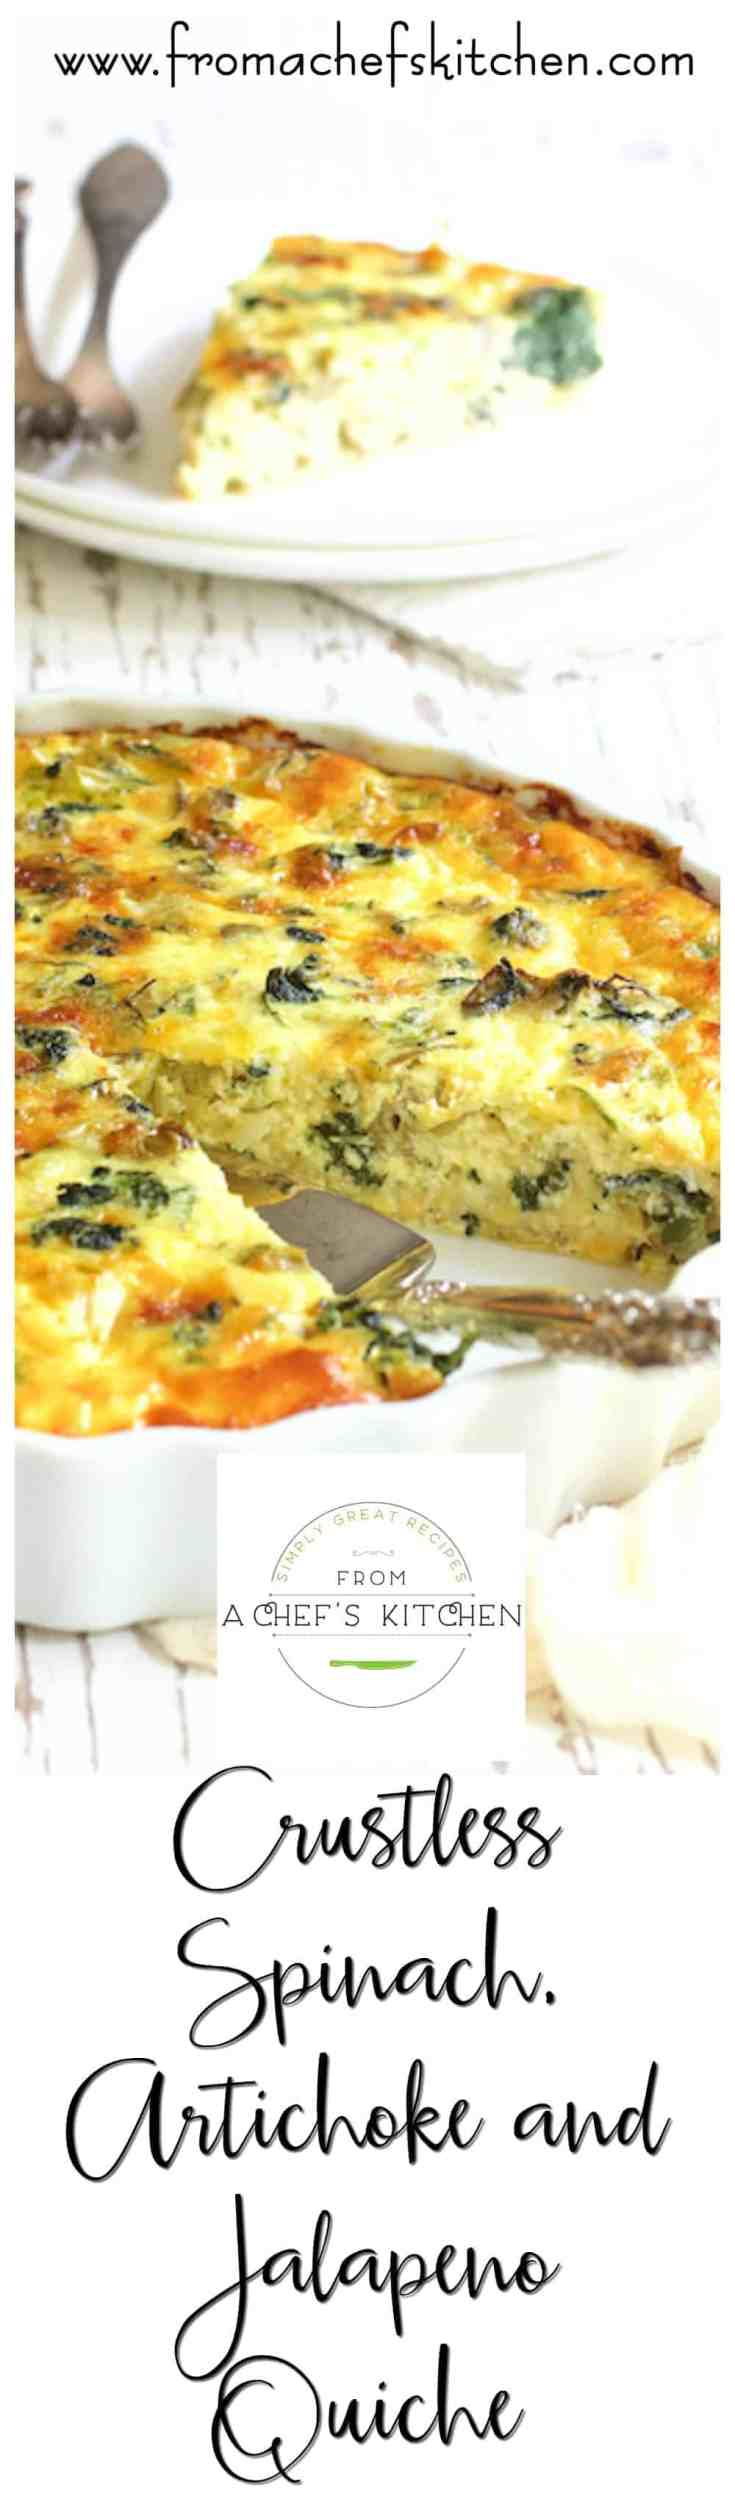 Crustless Spinach, Artichoke and Jalapeno Quiche is quiche with a kick! Low-carb and perfect for when you need fancy or just want simple and rustic. #crustlessquiche #lowcarb #lowcarbquiche #spinach #artichoke #jalapeno #quiche